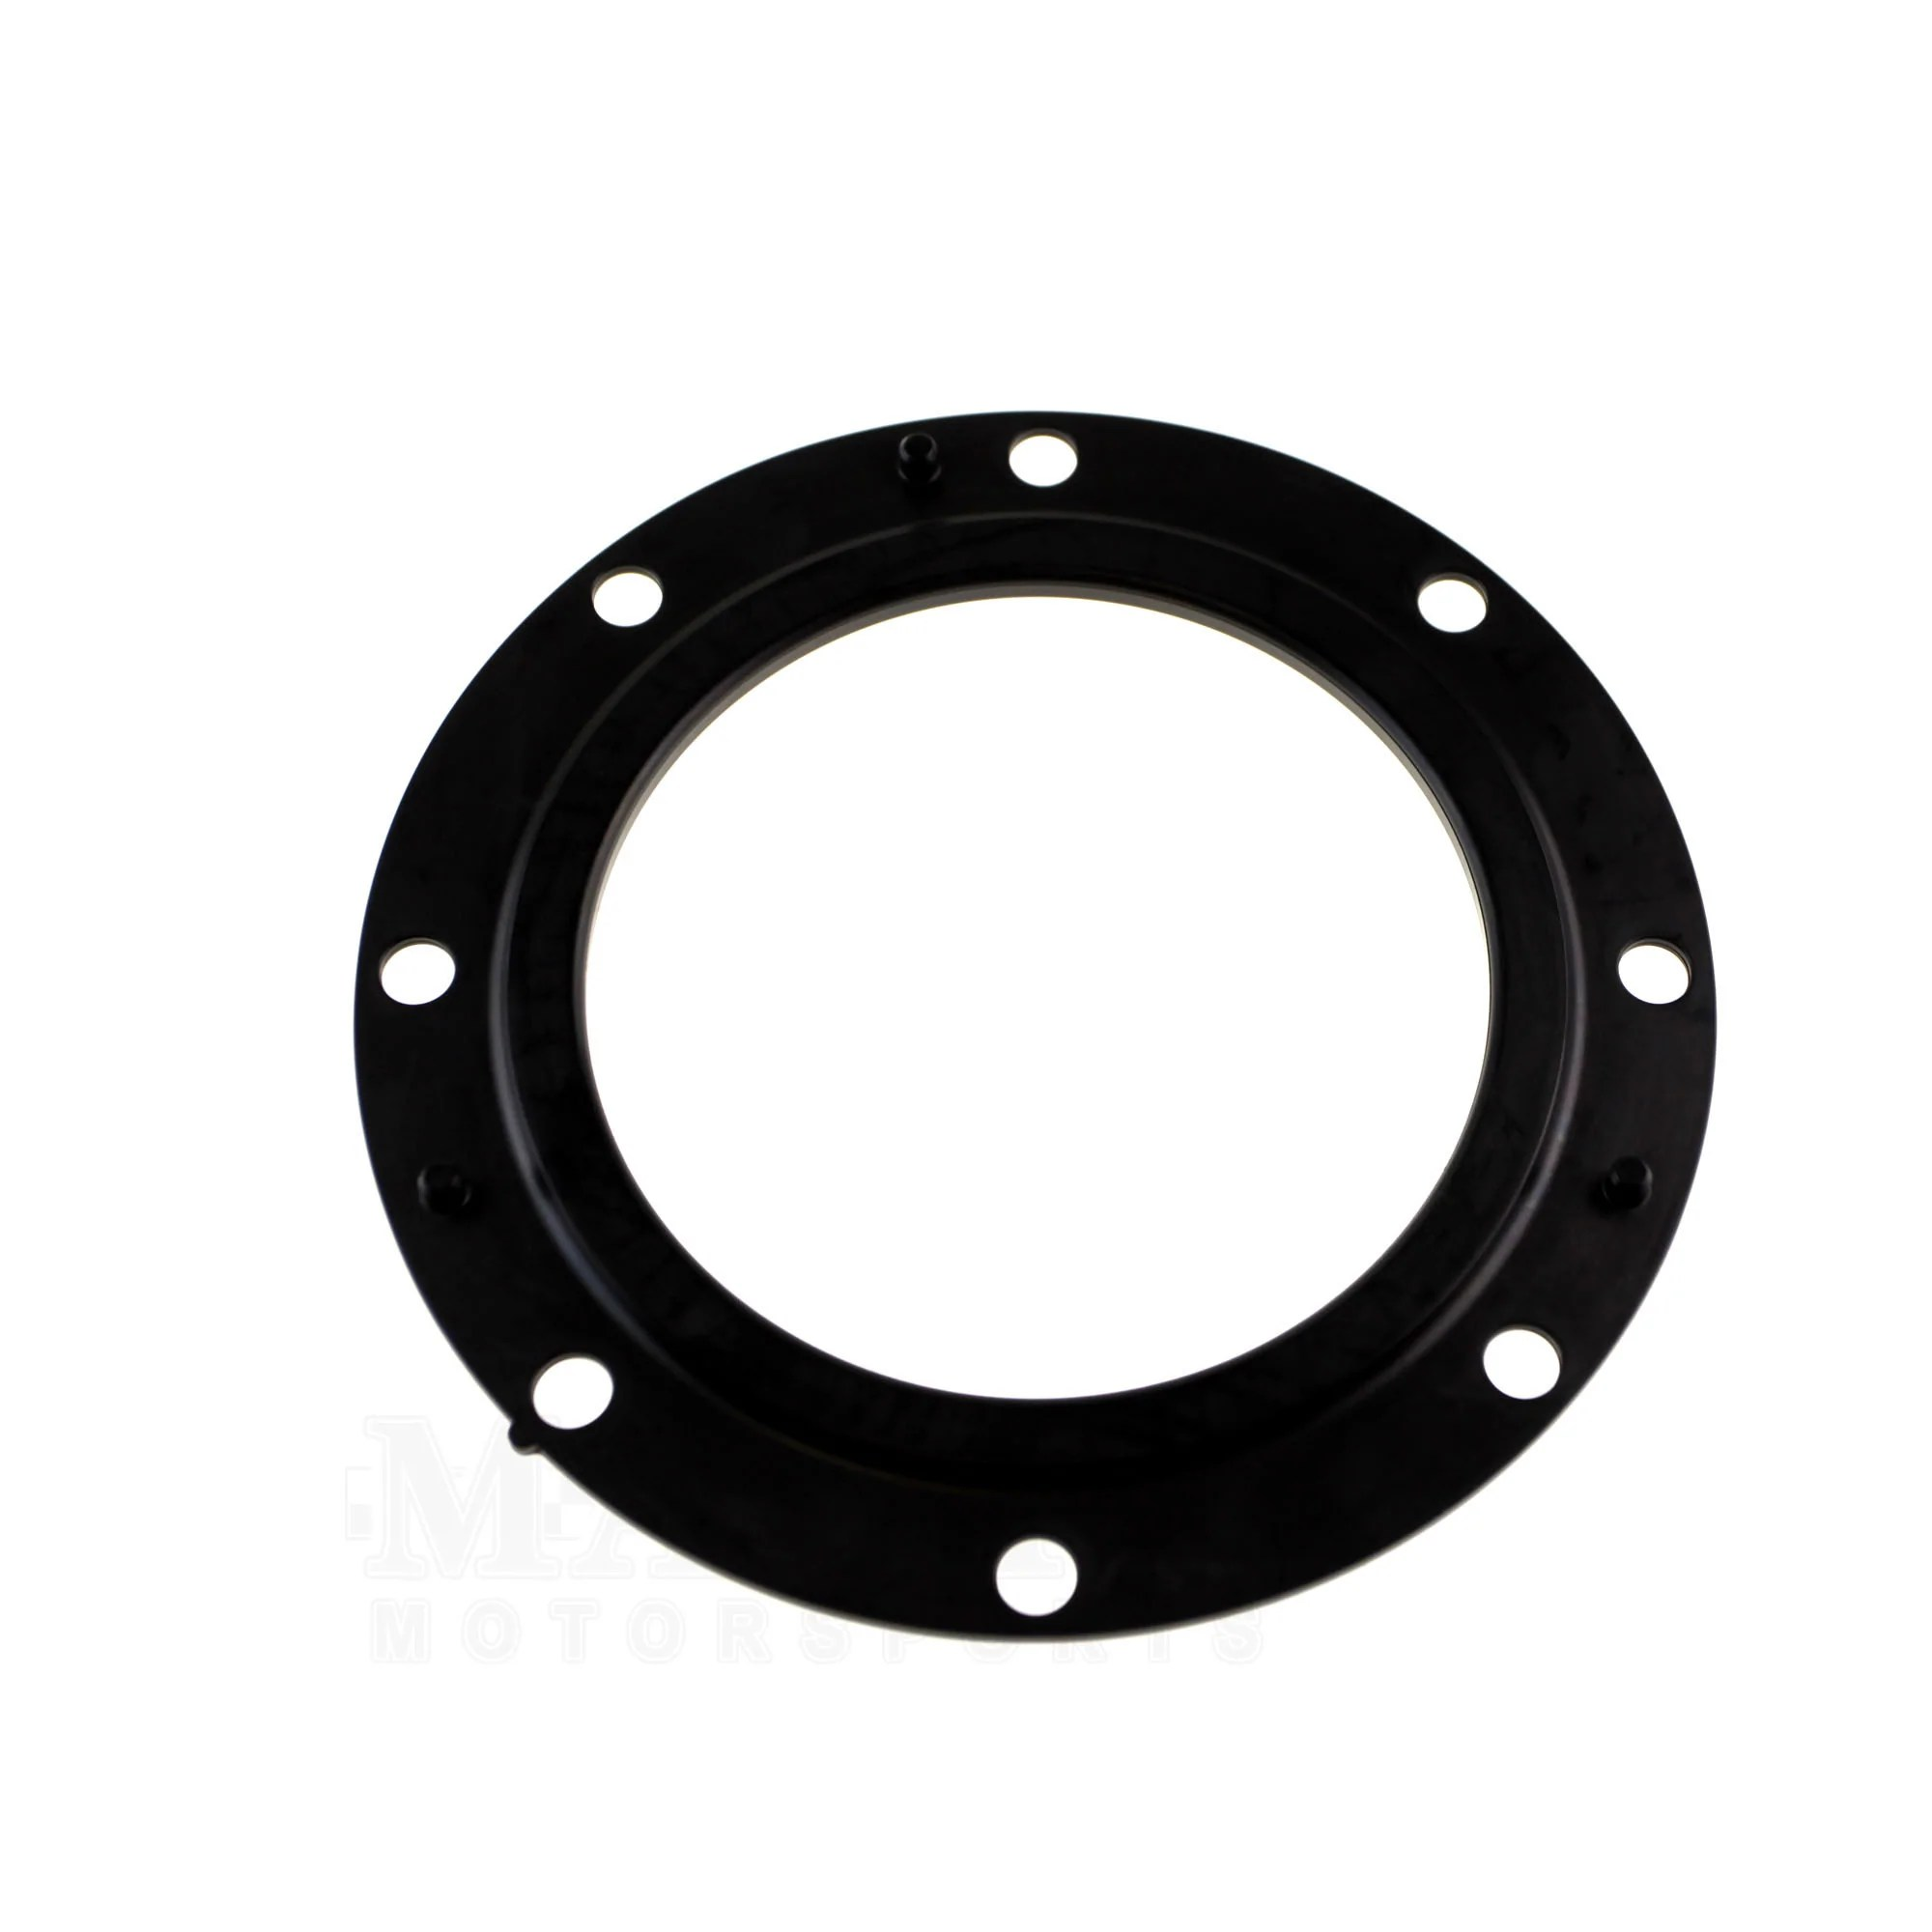 medium resolution of subaru fuel tank gasket 2008 2014 wrx sti